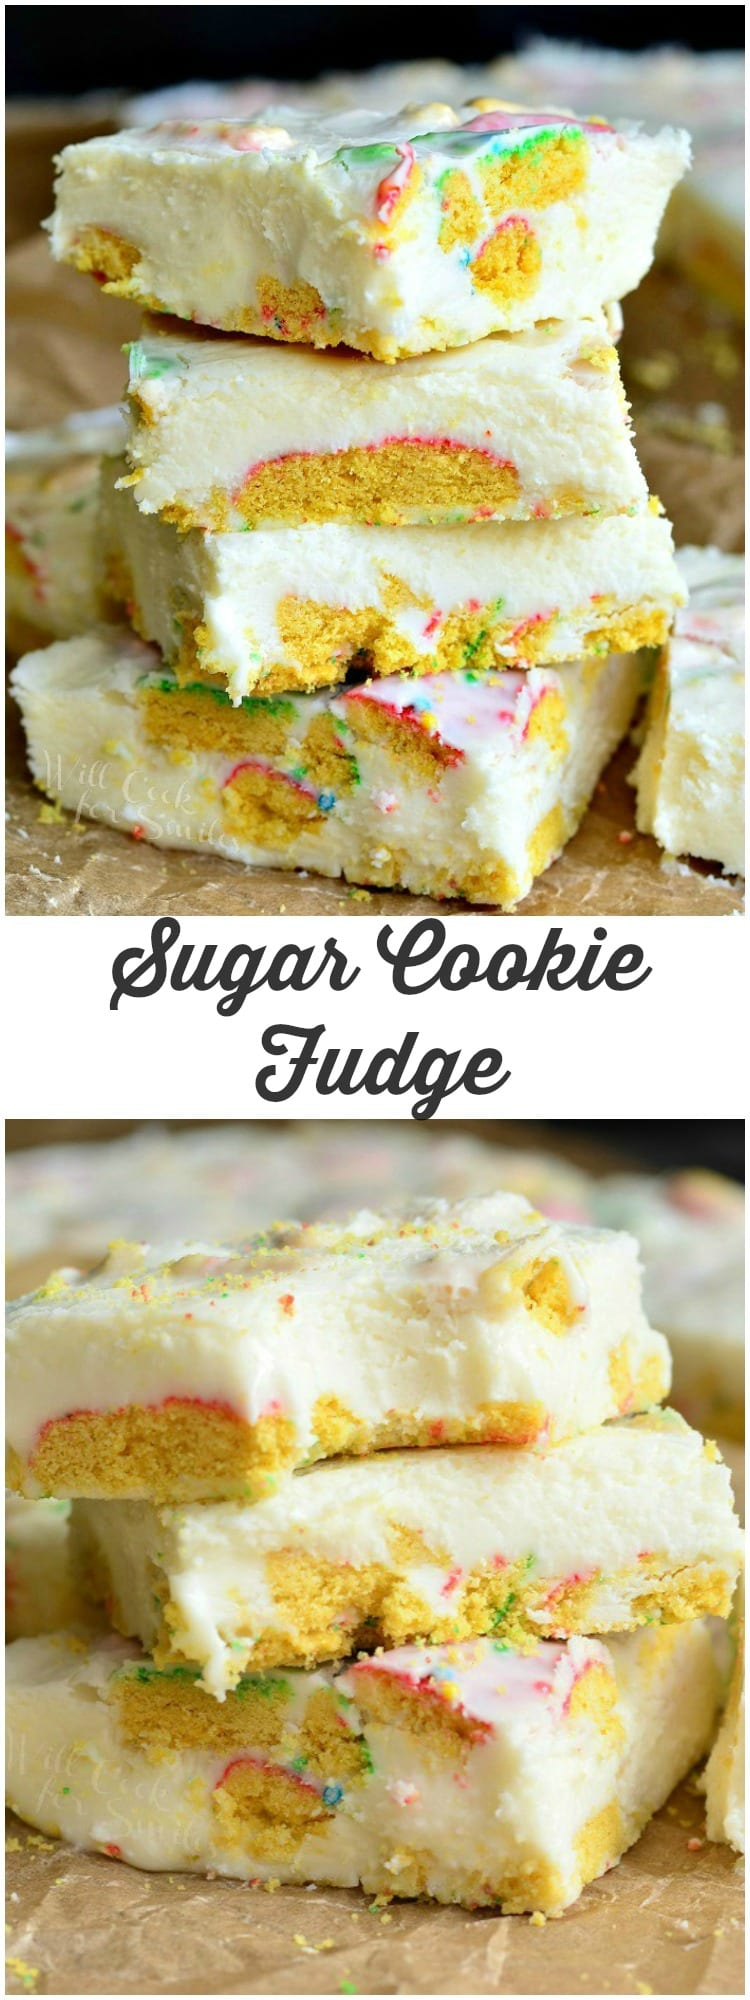 Sugar Cookie Fudge | from willcookforsmiles.com #dessert #whitechocolate #sugarcookie